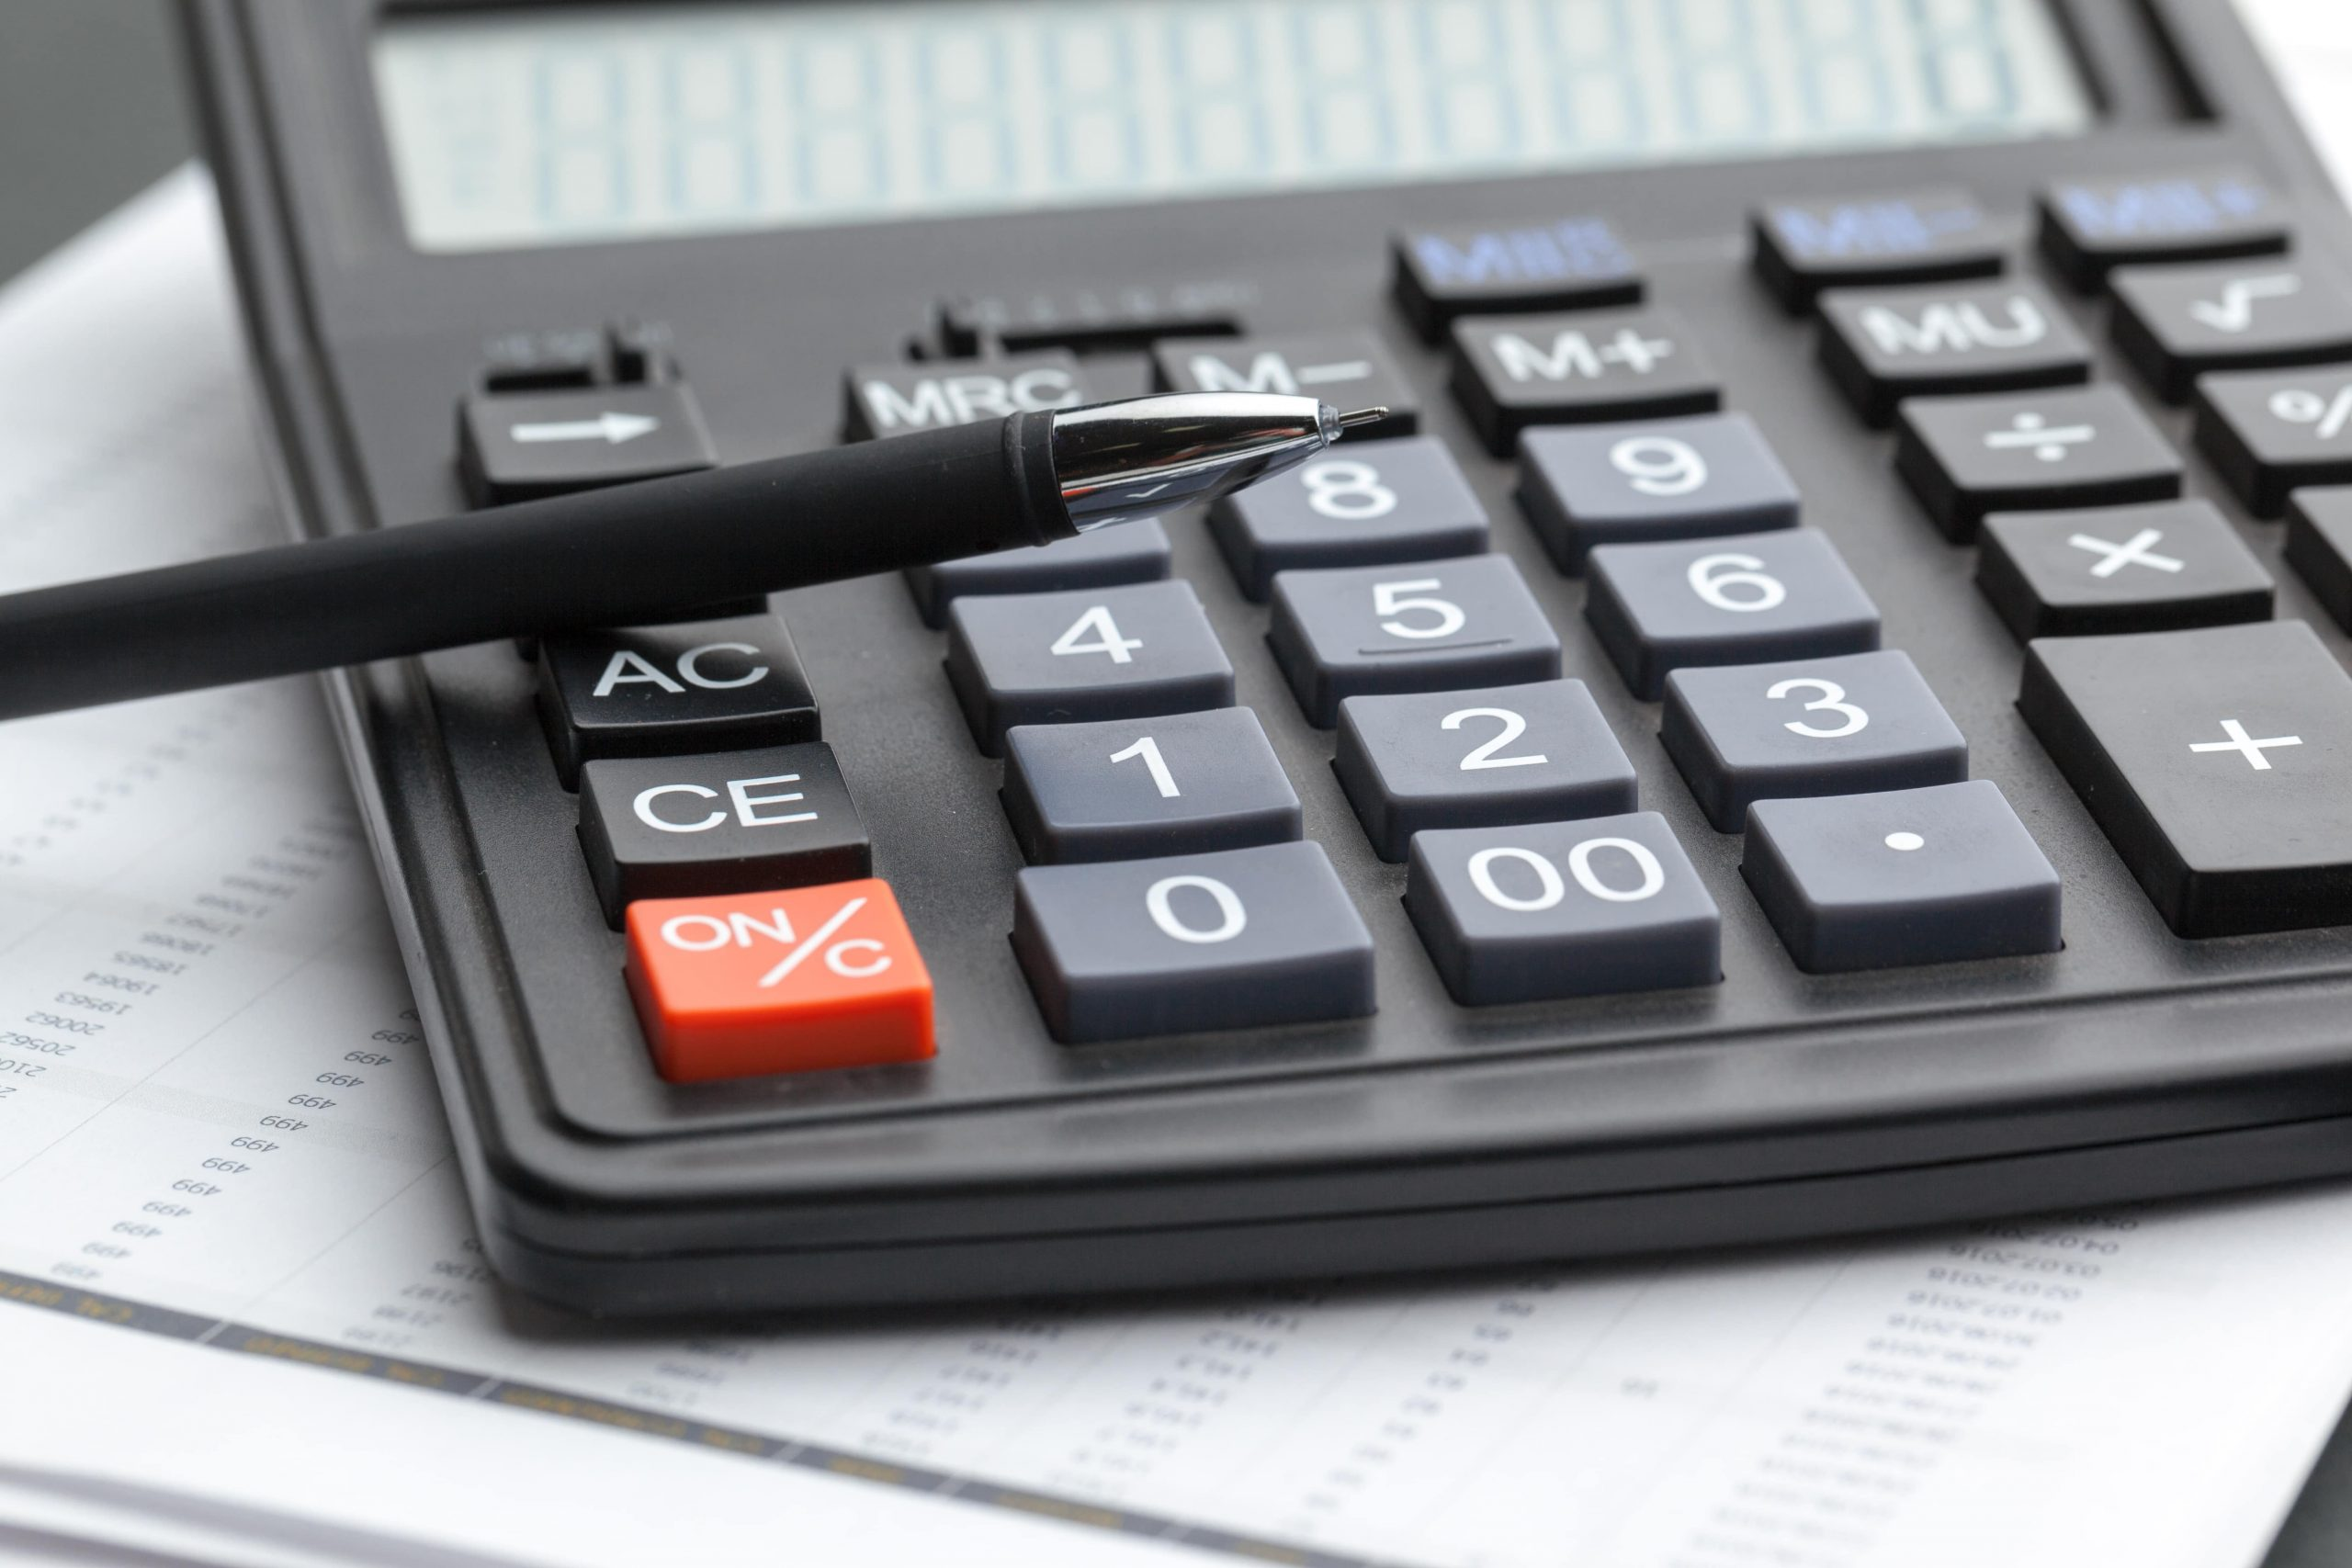 office-table-calculator-with-pen-close-up-QKZE86M